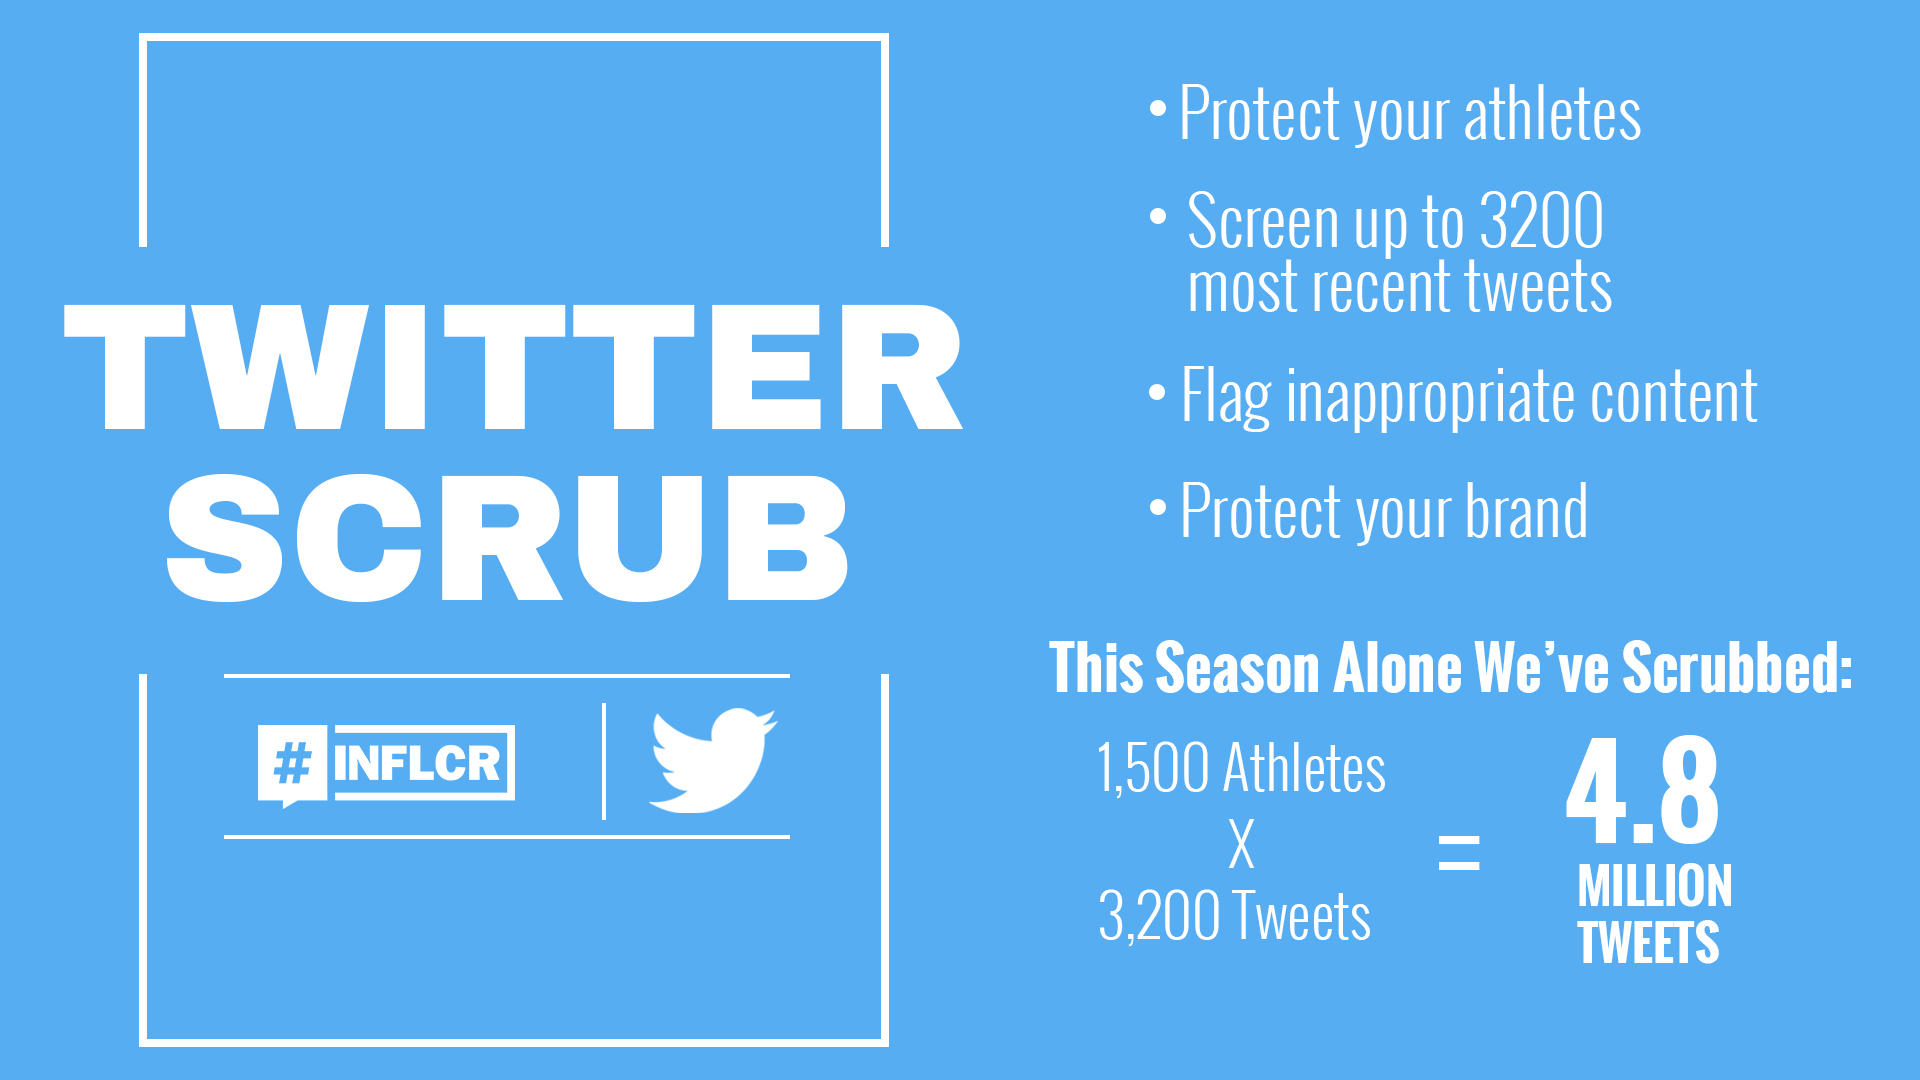 Twitter scrub protects athletes by screening tweets and flagging inappropriate content